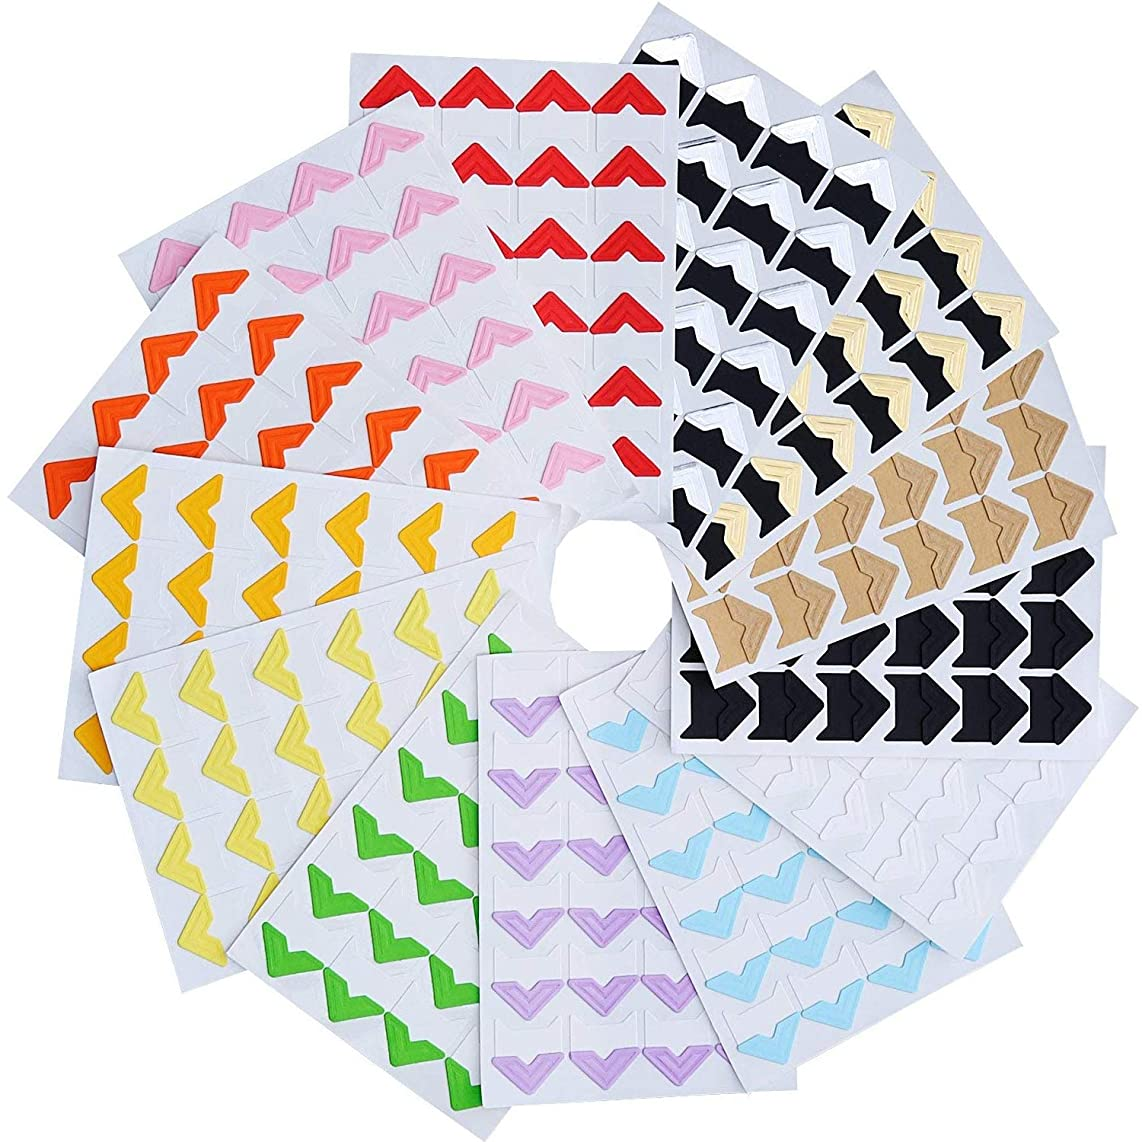 Kbnian Photo Corners 312PCS Self Adhesive Photo Mounting Protector with Squares Multicolored Photo Paper Holder for Scrapbooking Album Dairy Journal